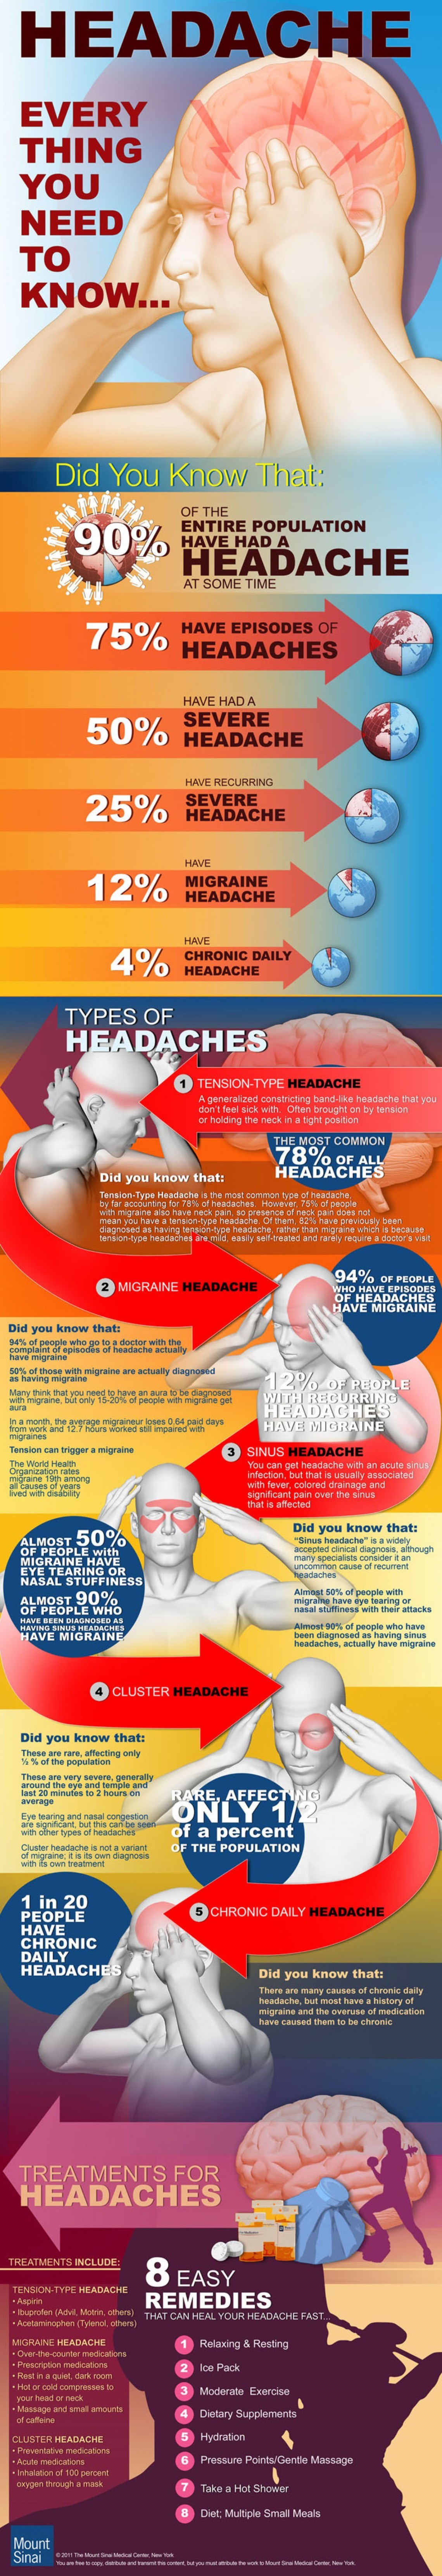 01 headache-everything-you-need-to-know_50290fc260bb6_w1500